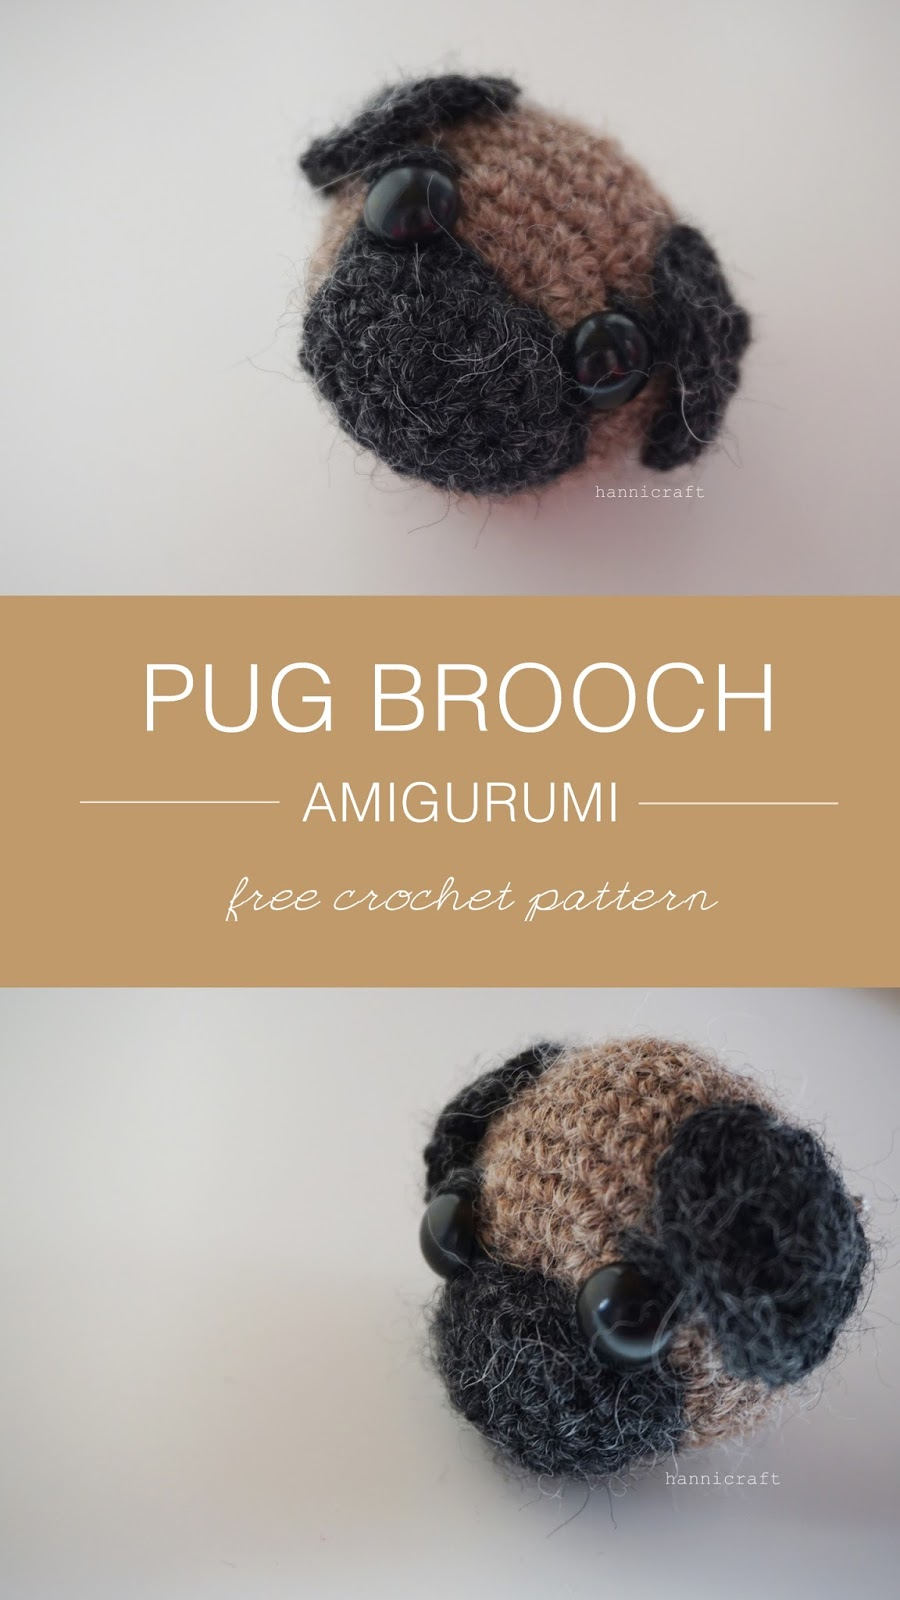 hannicraft: Pug Brooch {Free Pattern}